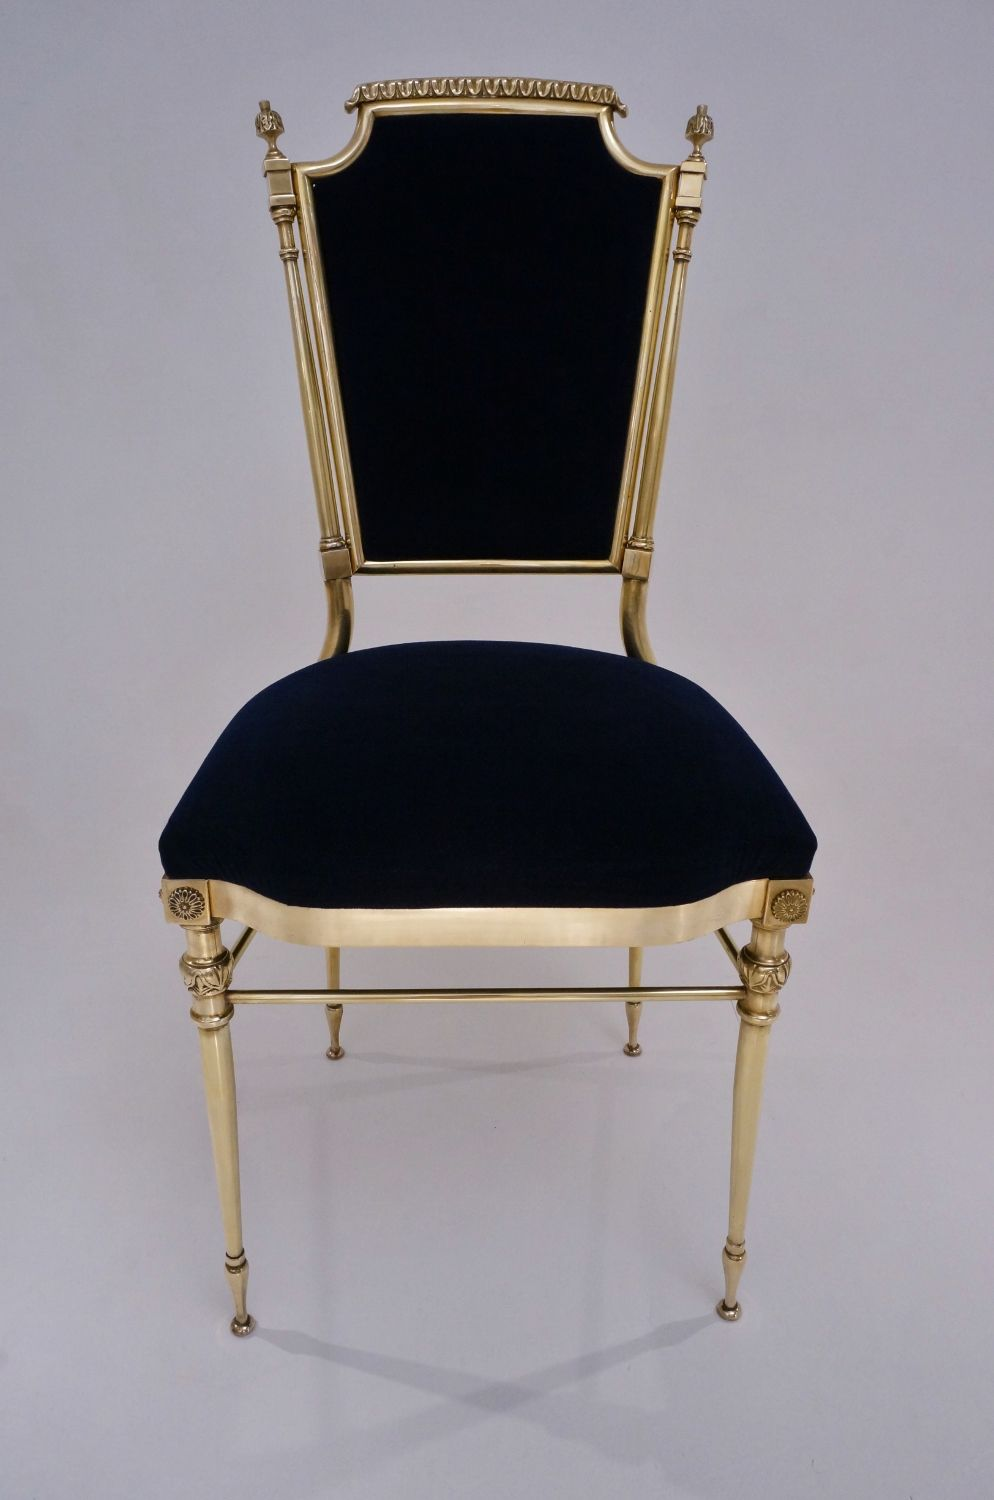 (camden town) Neoclassical brass chairs, a set of four, 1950`s ca, French